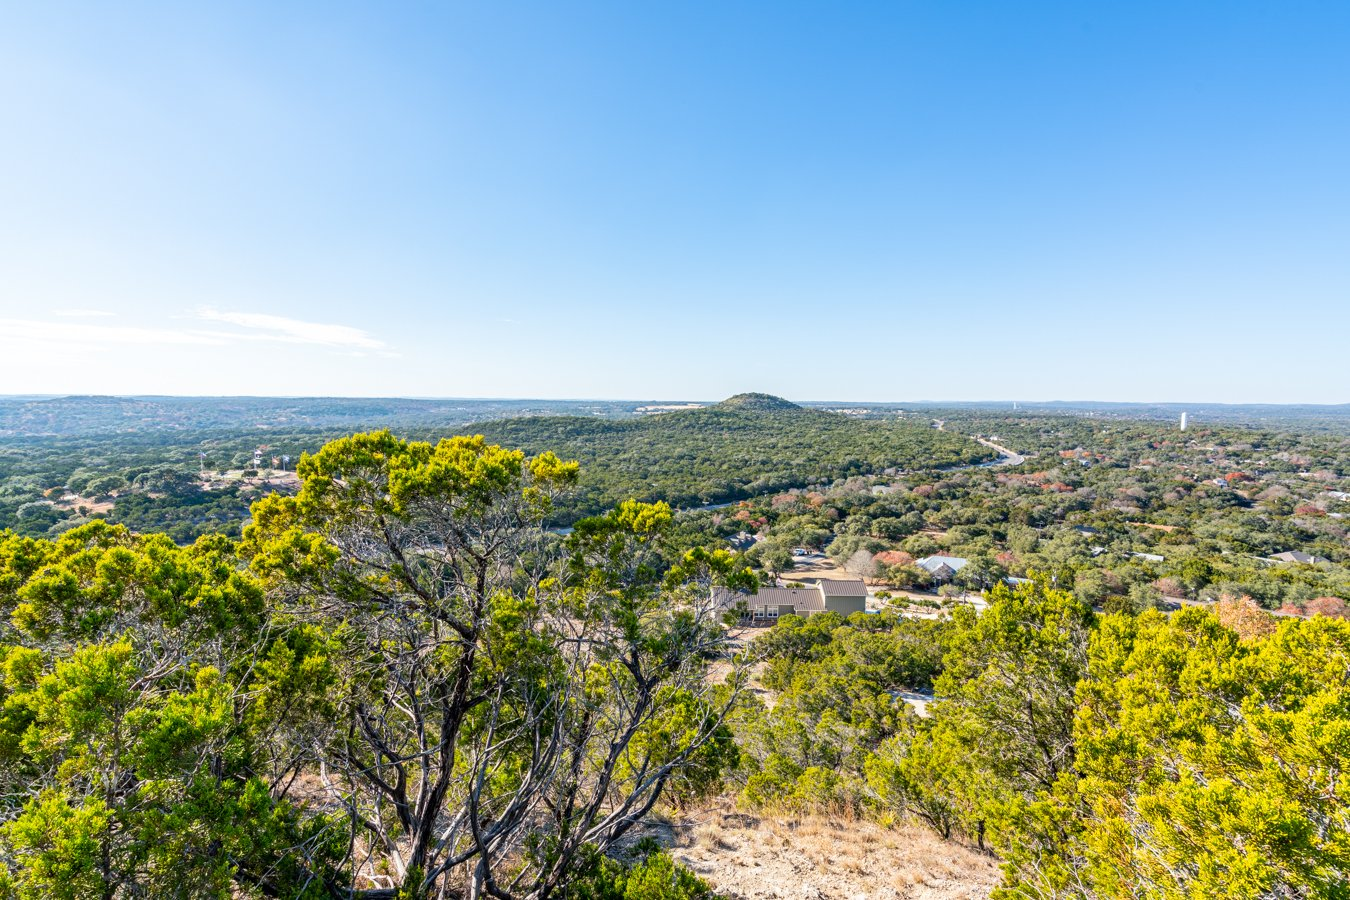 view of texas hill country from above at old baldy wimberley prayer mountain